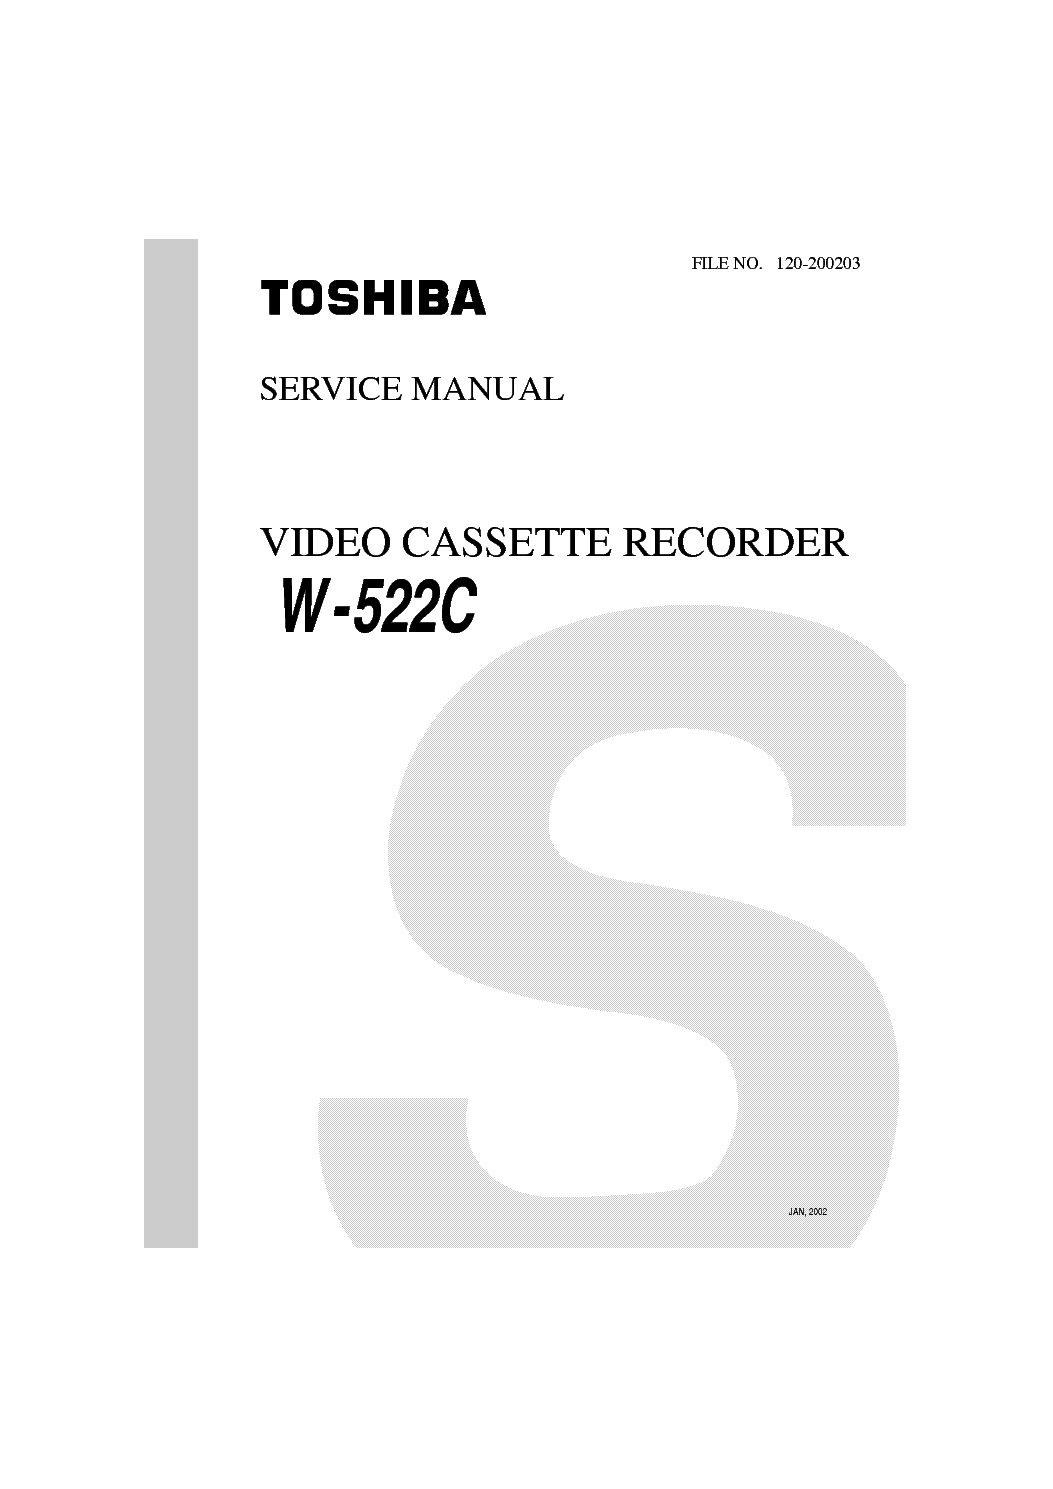 TOSHIBA HD-A-D-2-HAR-DISK-SVM Service Manual download